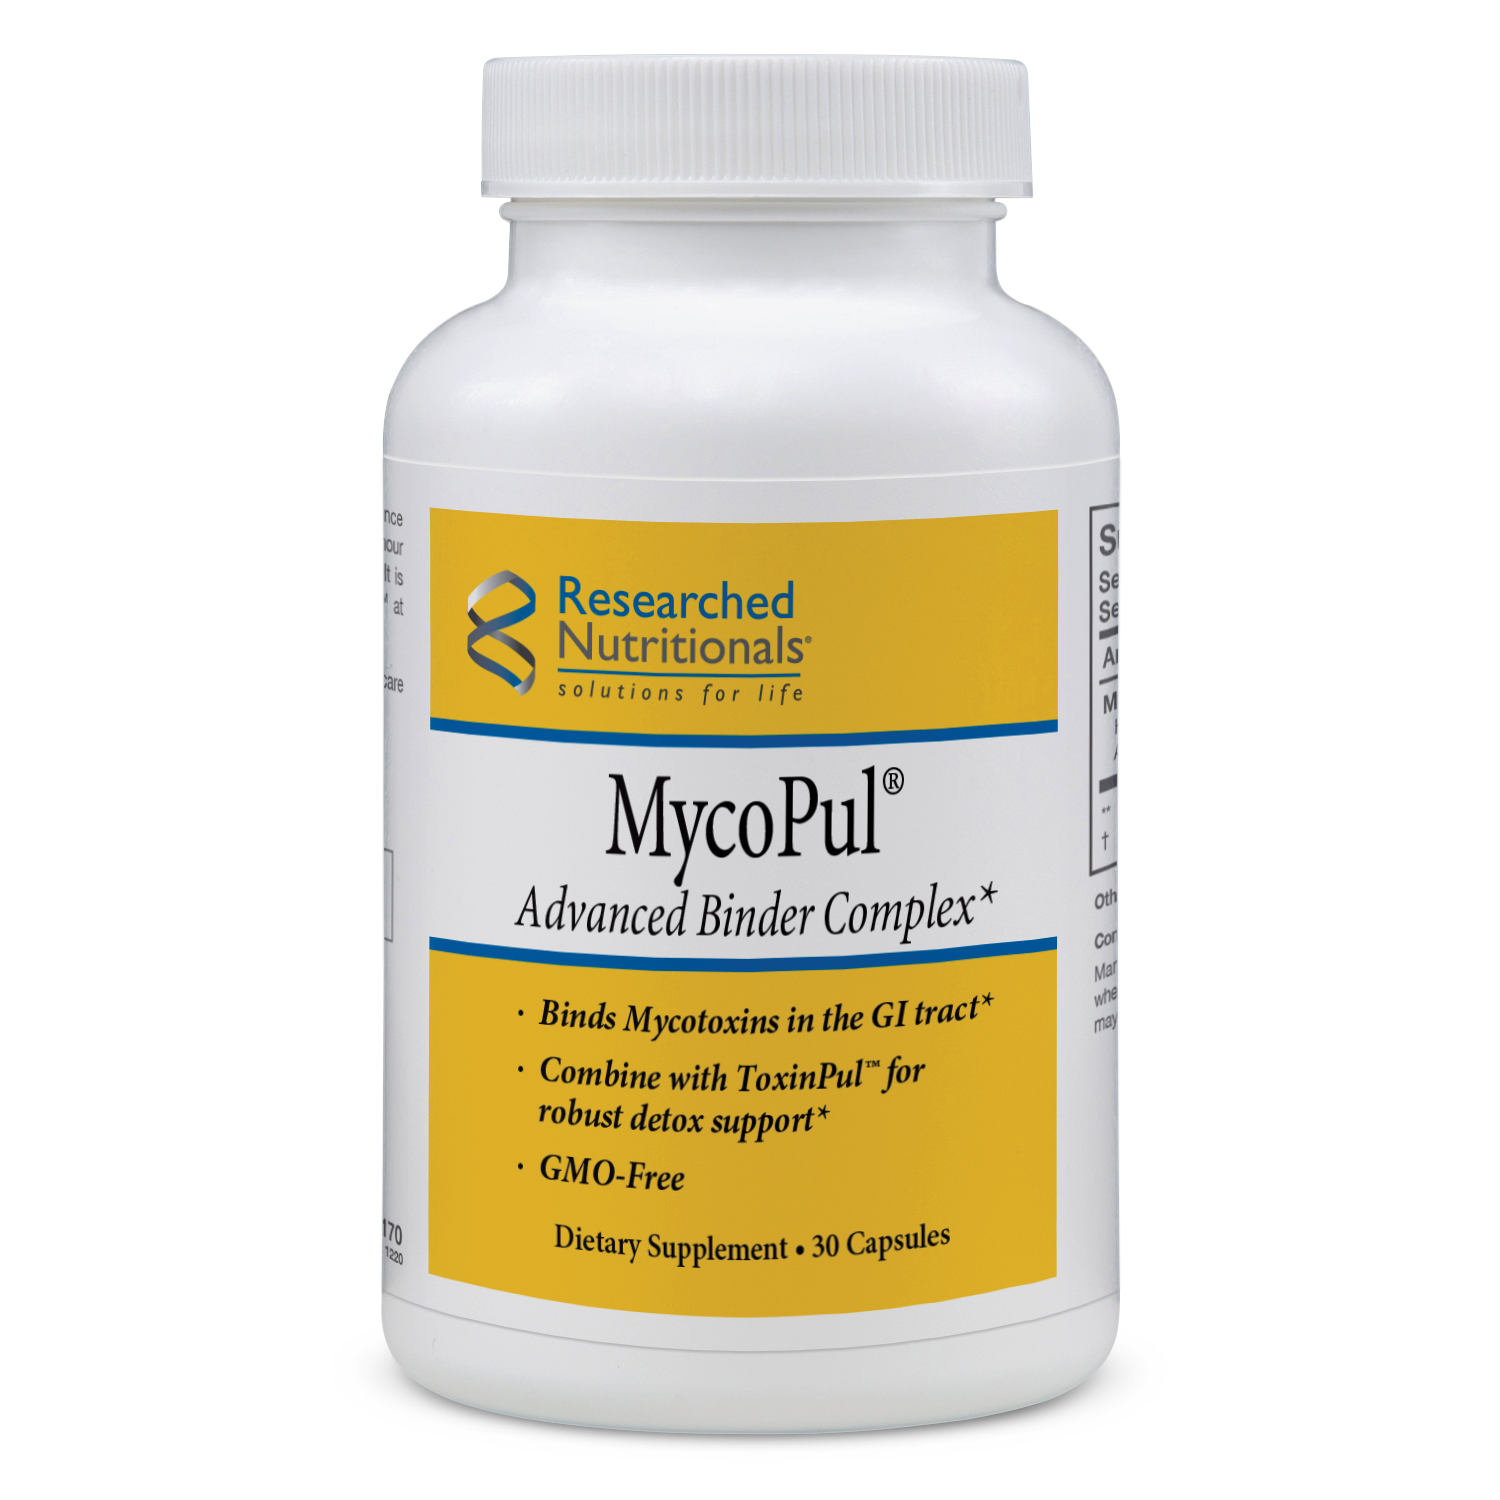 mycopul research bottle image support removal of mycotoxin